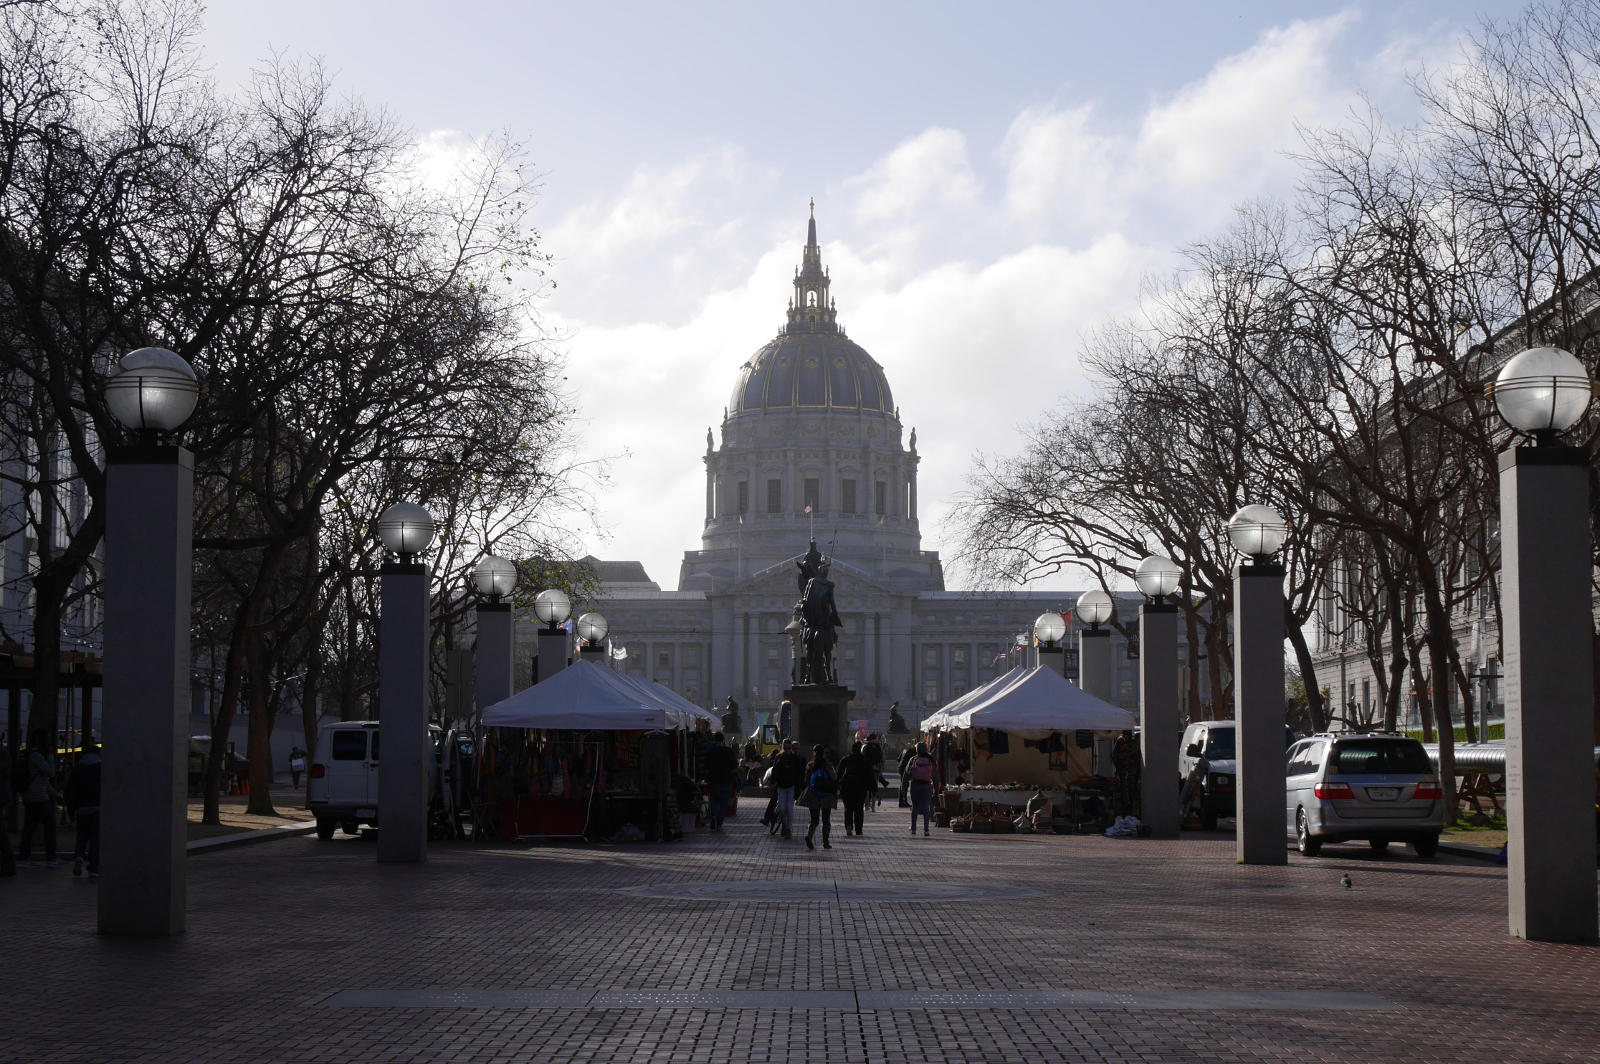 UN Plaza, San Francisco, with City Hall in the background.